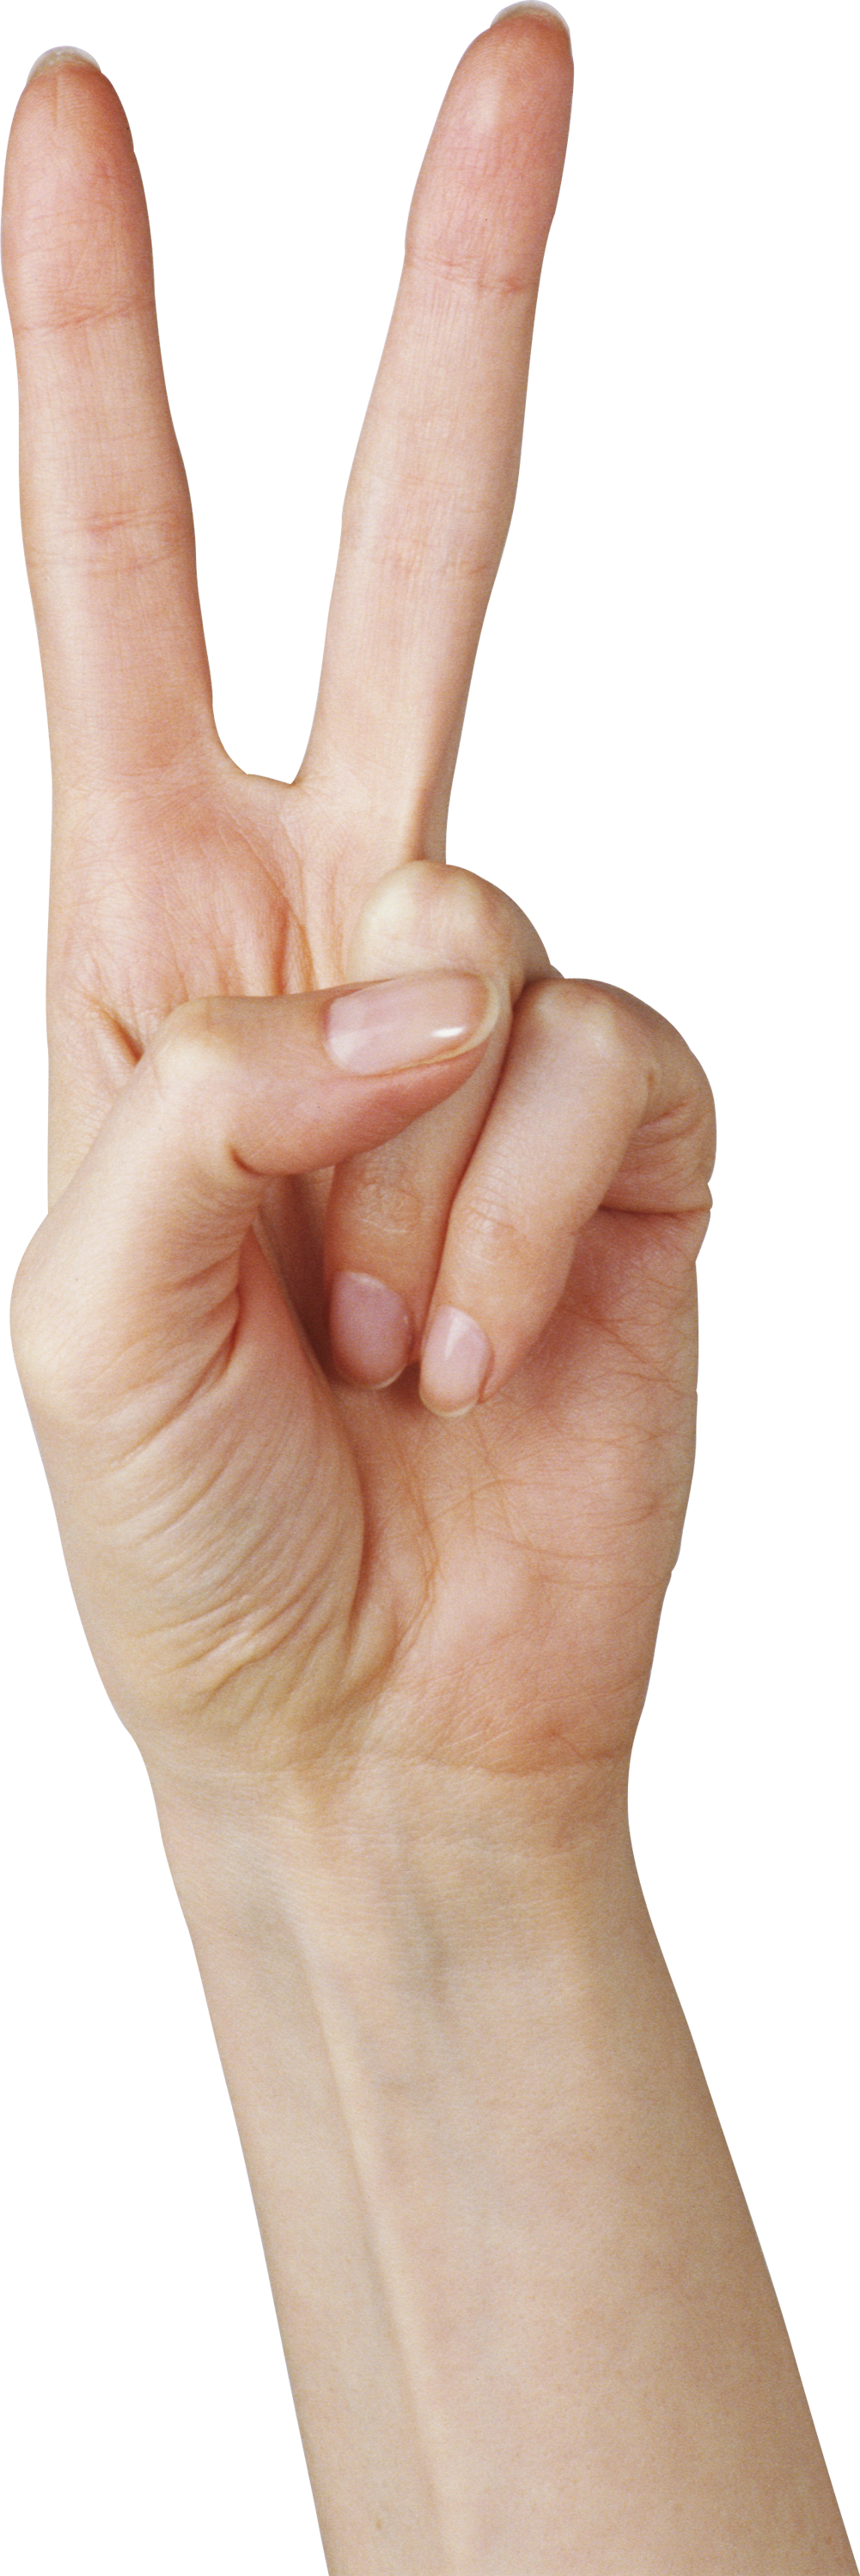 Hands Png Free Images Pictures Download Hand Hand png & psd images with full transparency. hands png free images pictures